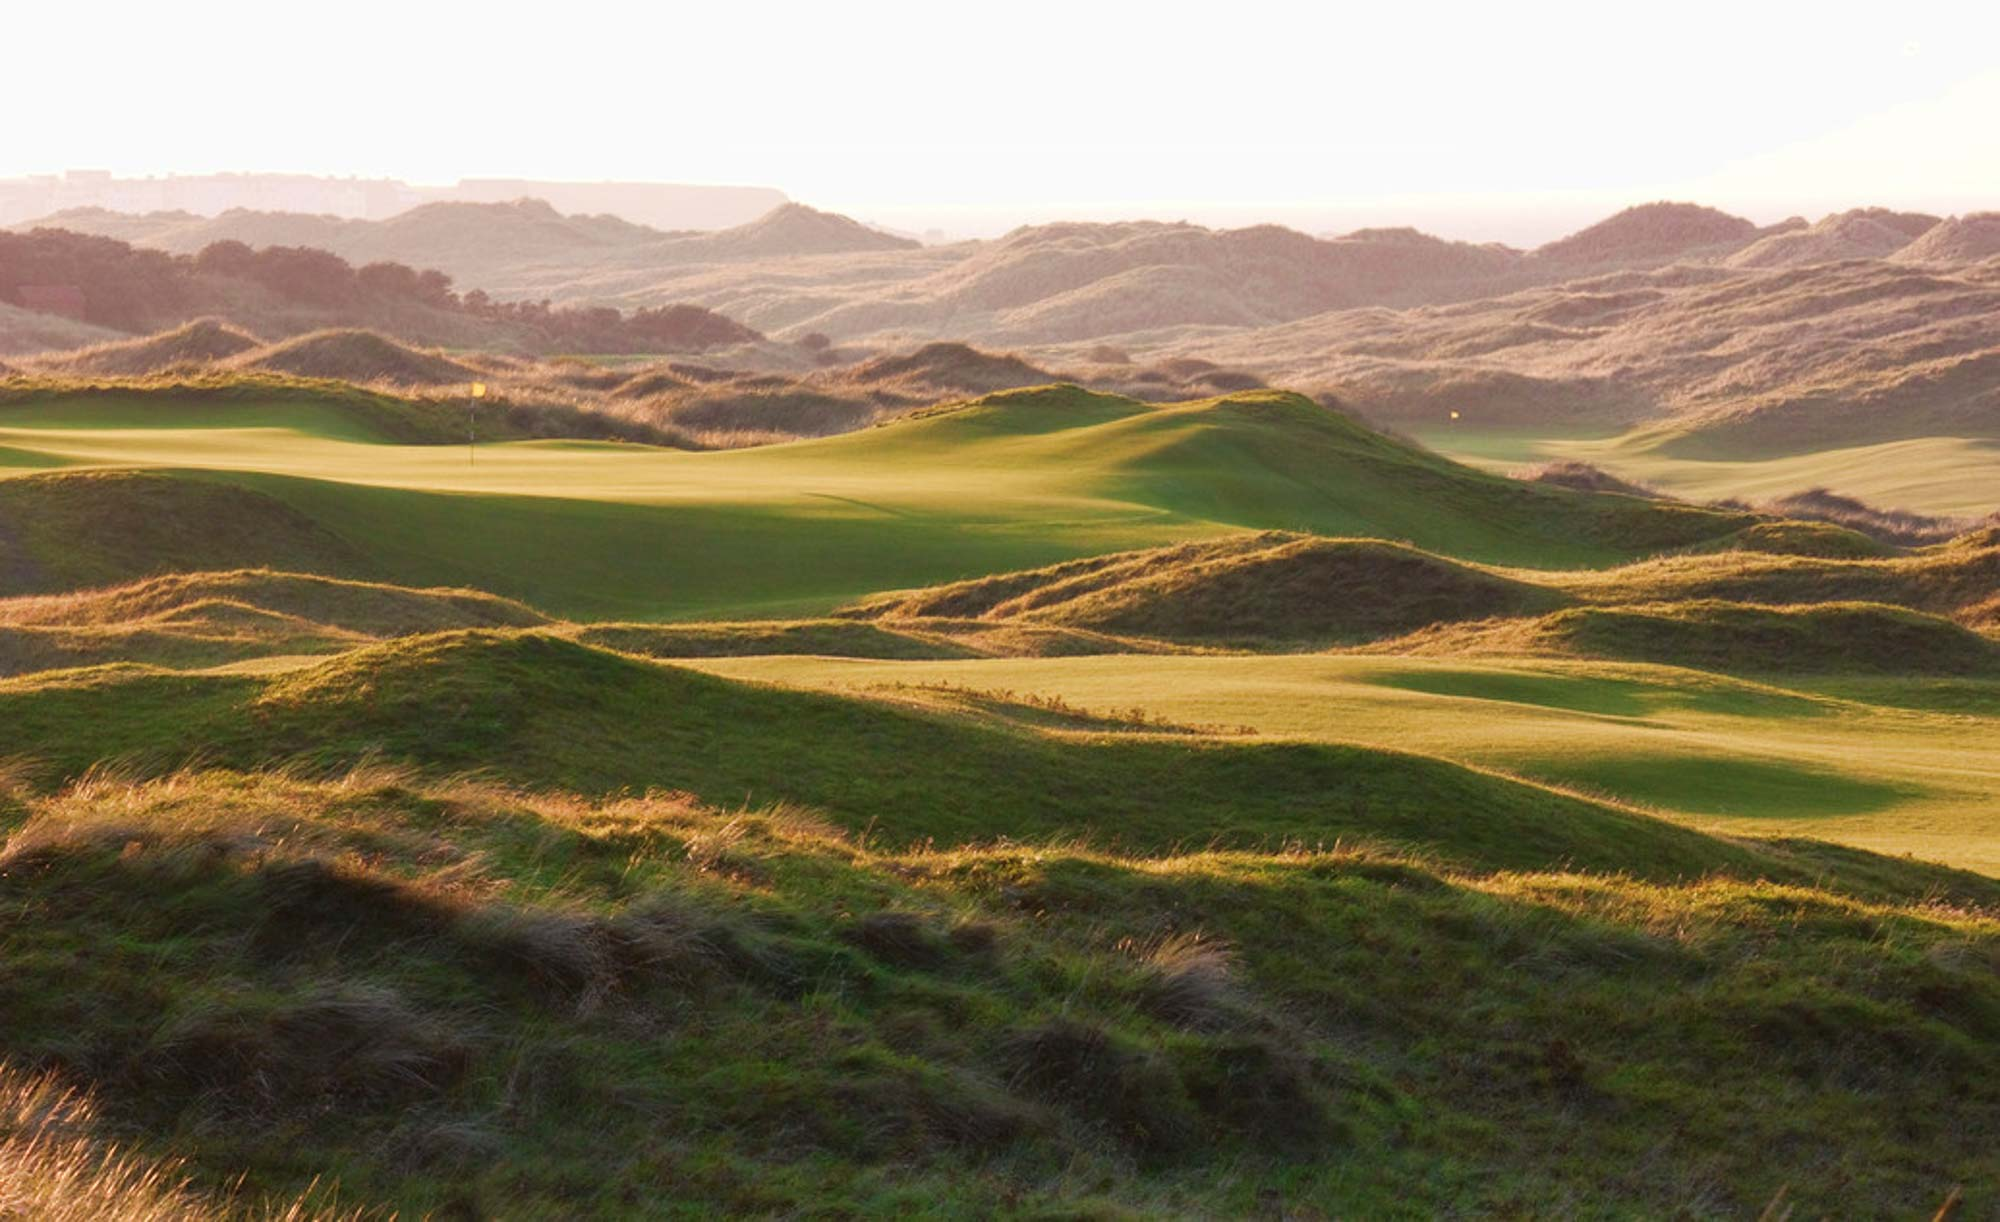 The rugged swales and undulations of the links at Royal Portrush Golf Club.